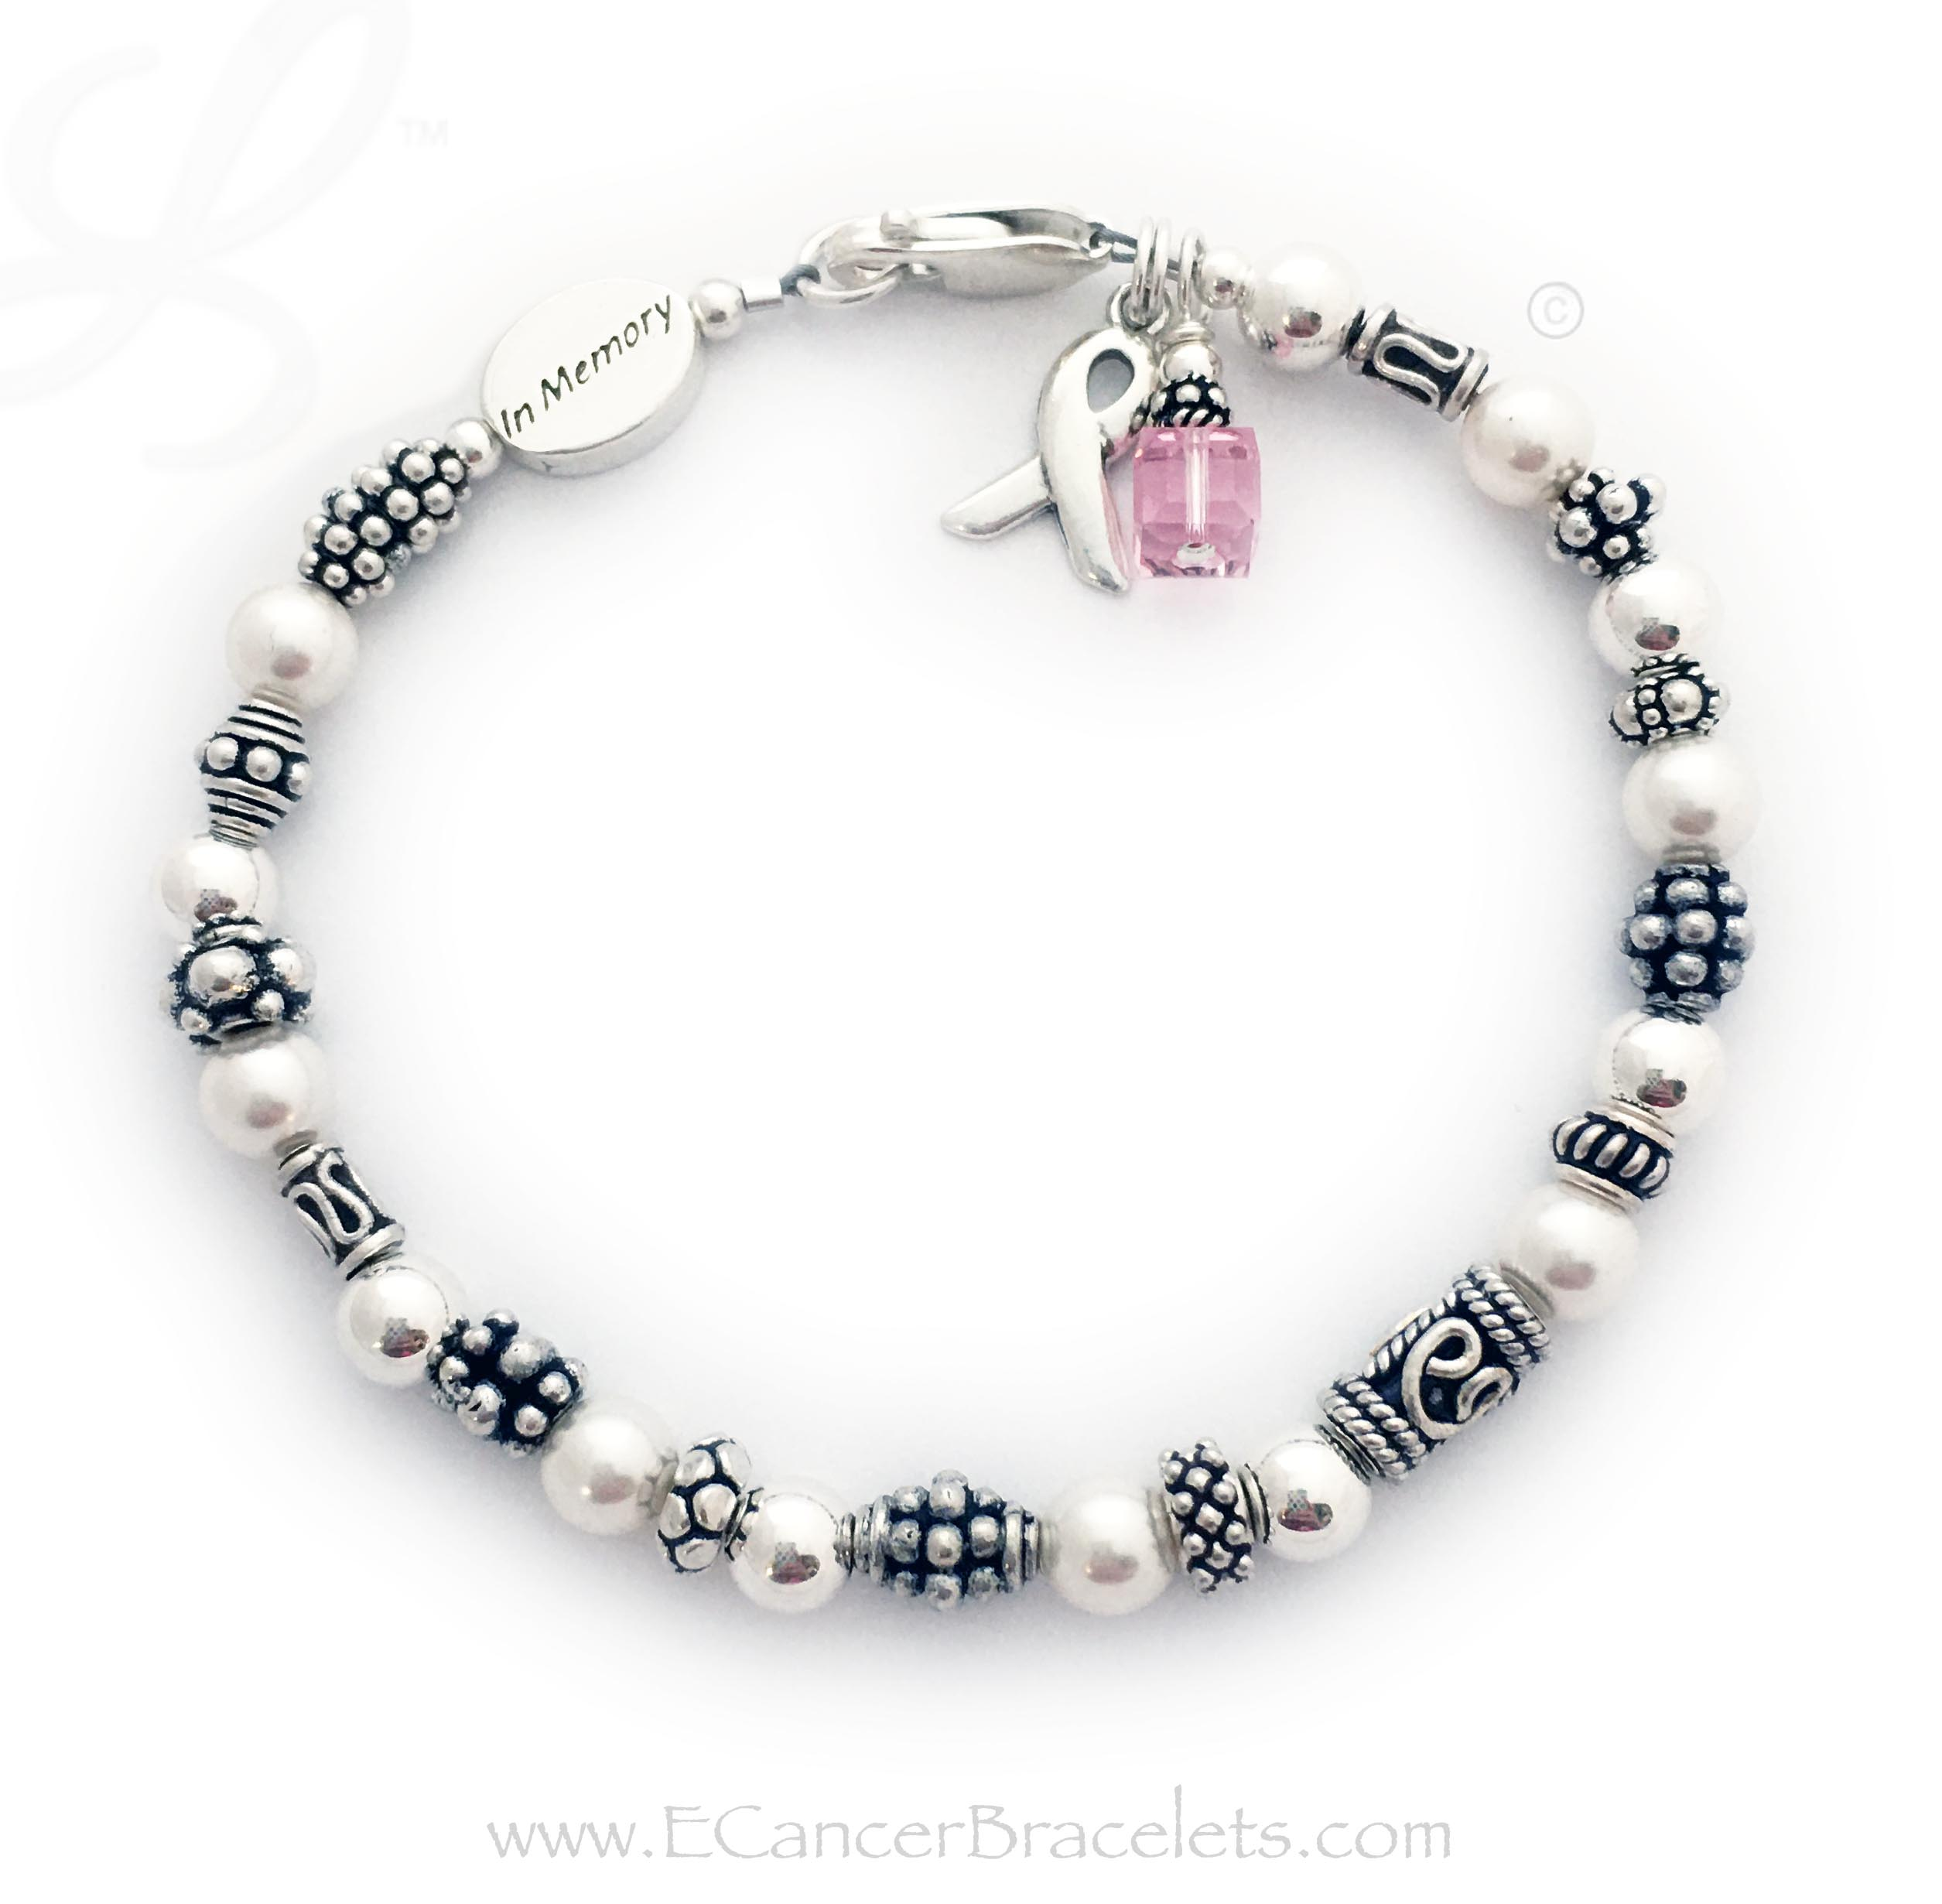 This is a .925 sterling silver and Pearl In Memory Ribbon Bracelet. You choose the color of the crystal dangle. I have 18 cancer color options. They picked pink for Breast Cancer. This bracelet comes with a Ribbon Charm and a Crystal Dangle. You may add additional charms to this design.